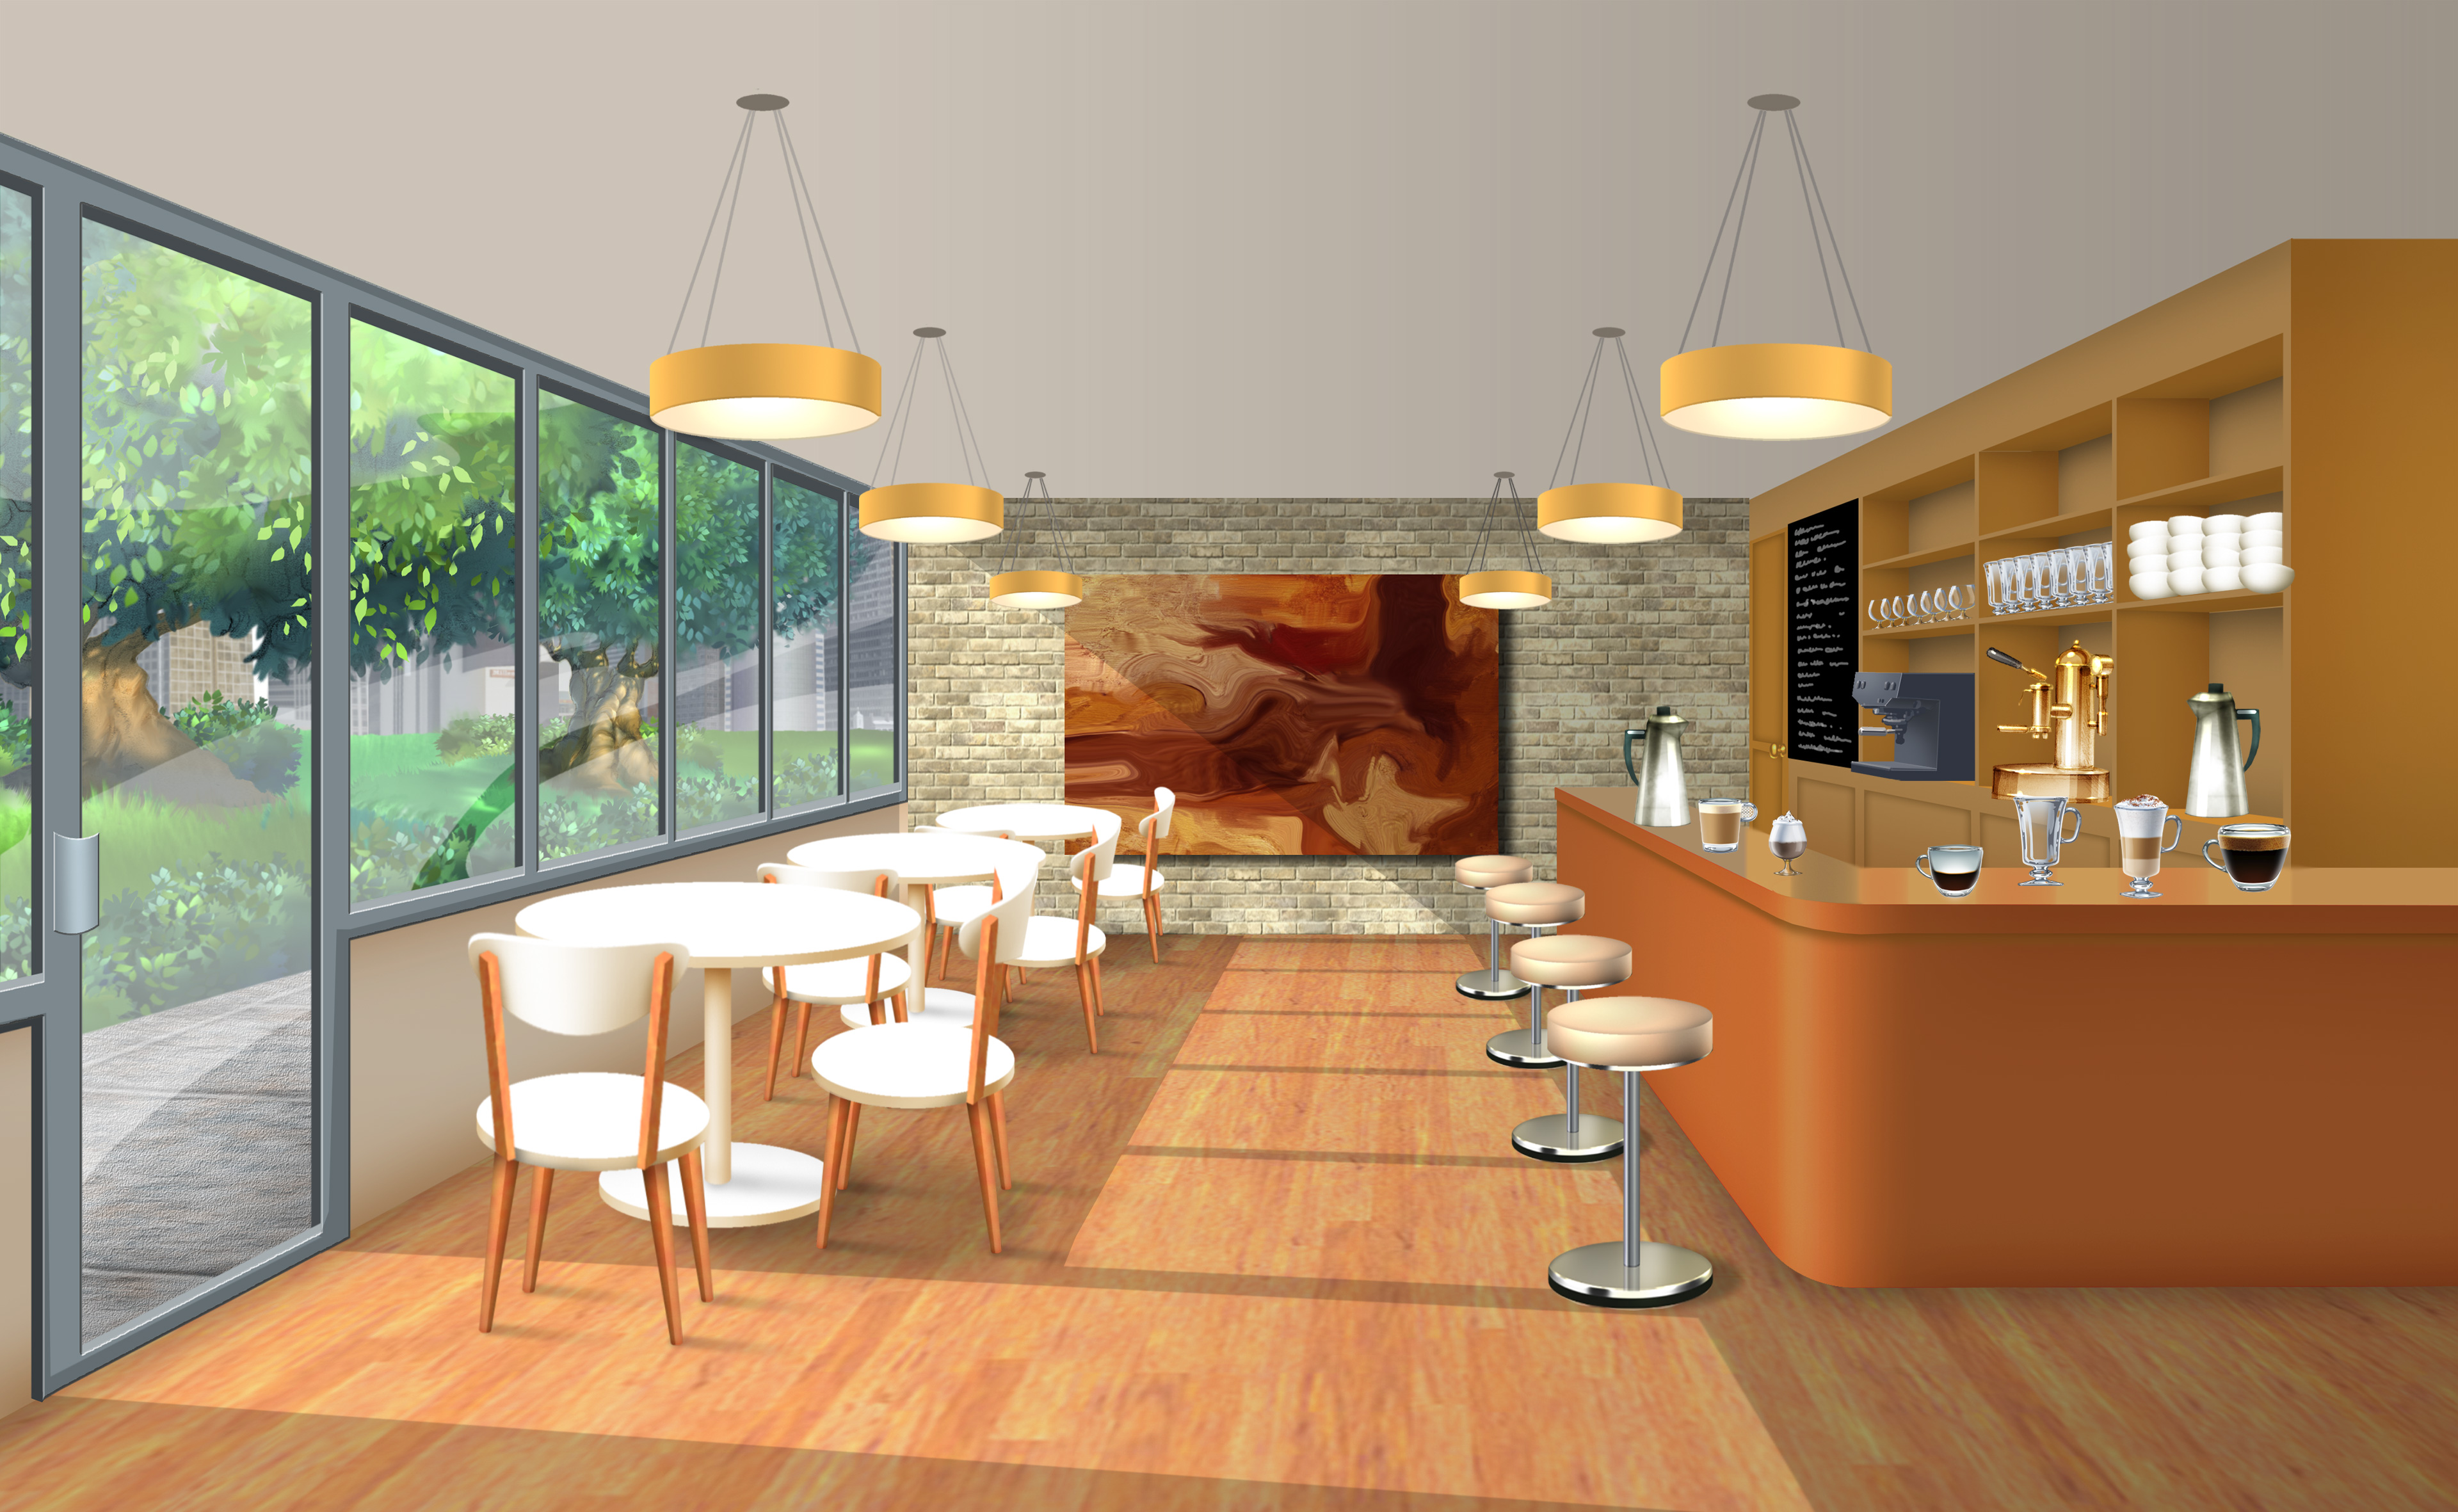 Introducing the Coffee Shop